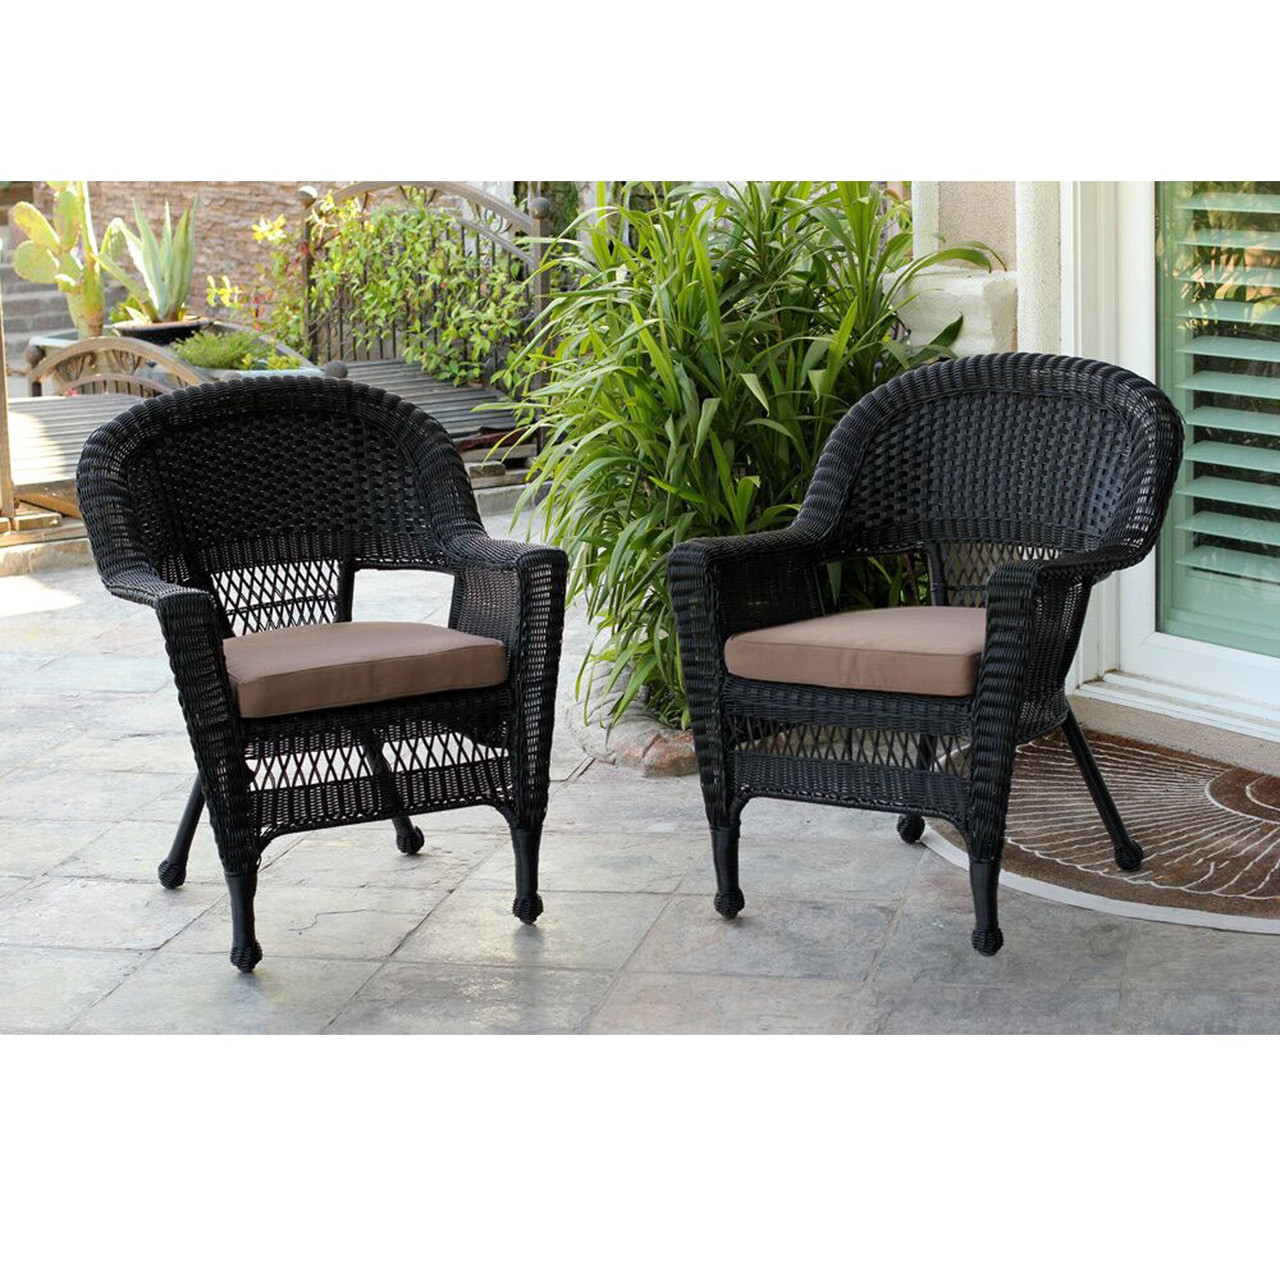 Set Of 2 Black Resin Wicker Outdoor Patio Garden Chairs With Brown Cushions 36 Christmas Central